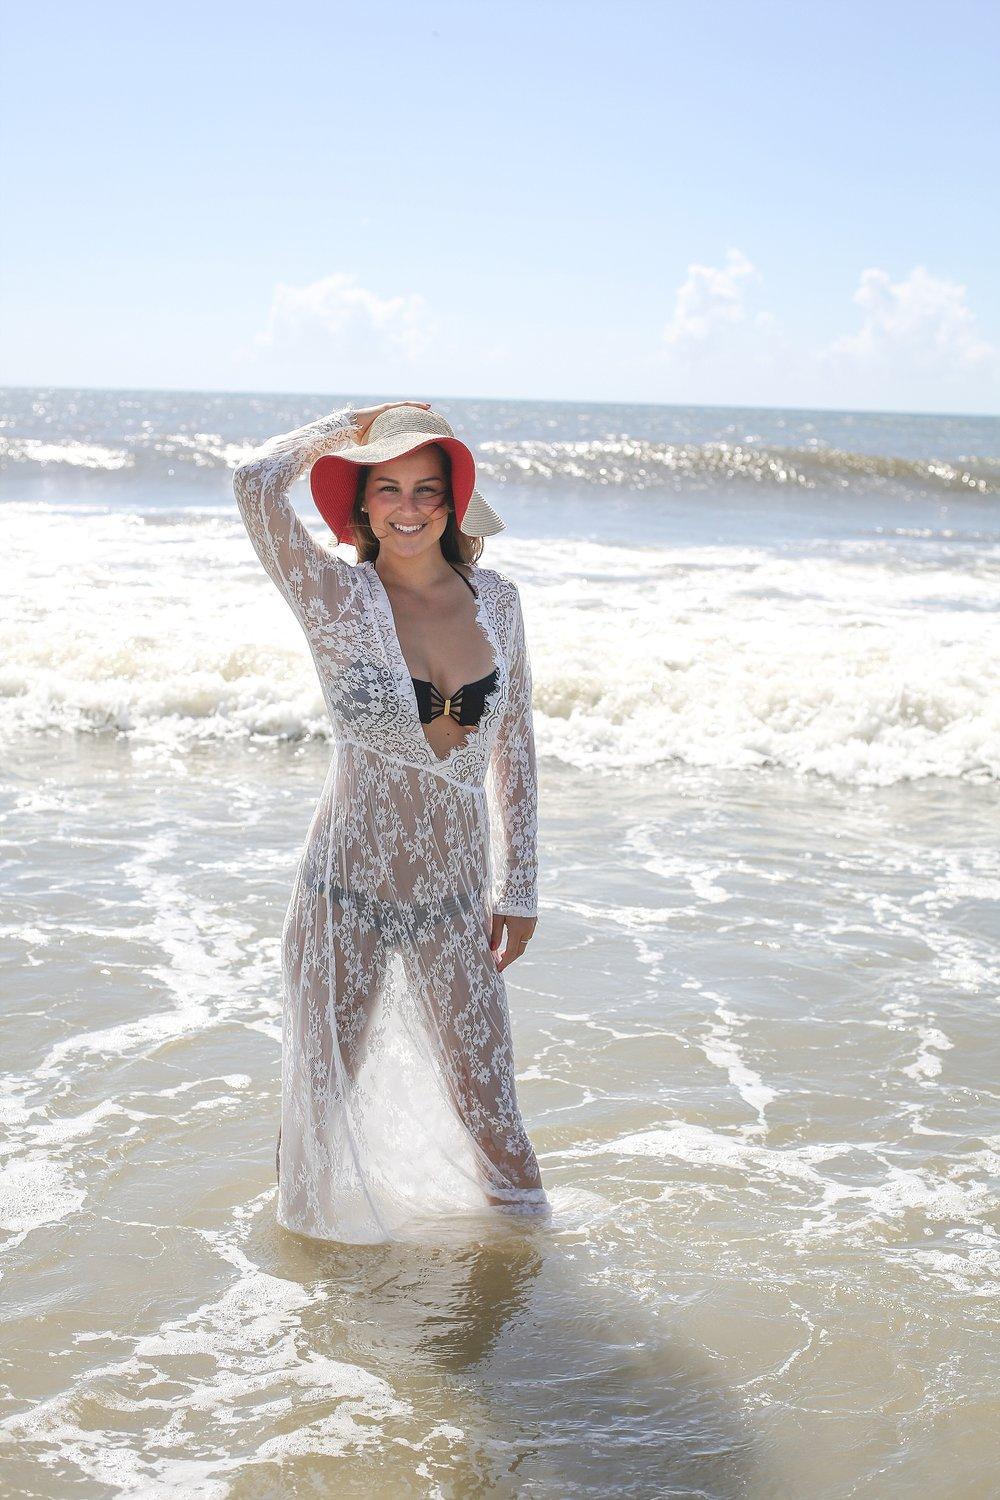 Wrightsville Beach Mermaids | Celestial Surf Studio + Spikey Peach Designs, Photos by Holly Cromer